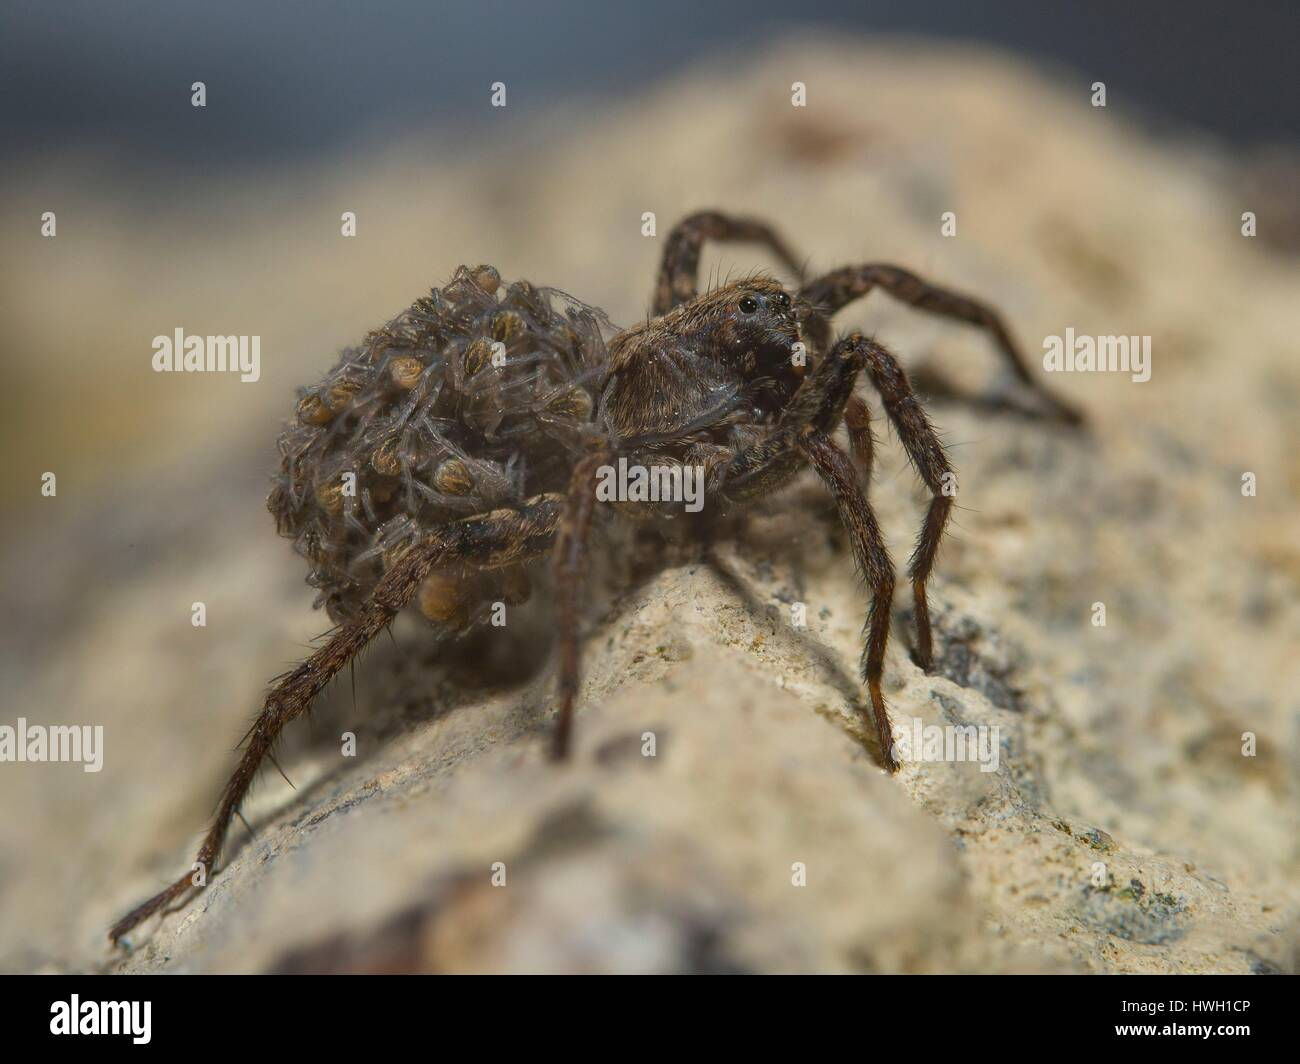 France, Auvergne, wolf spider (Pardosa amentata), the female carries her young on her back - Stock Image